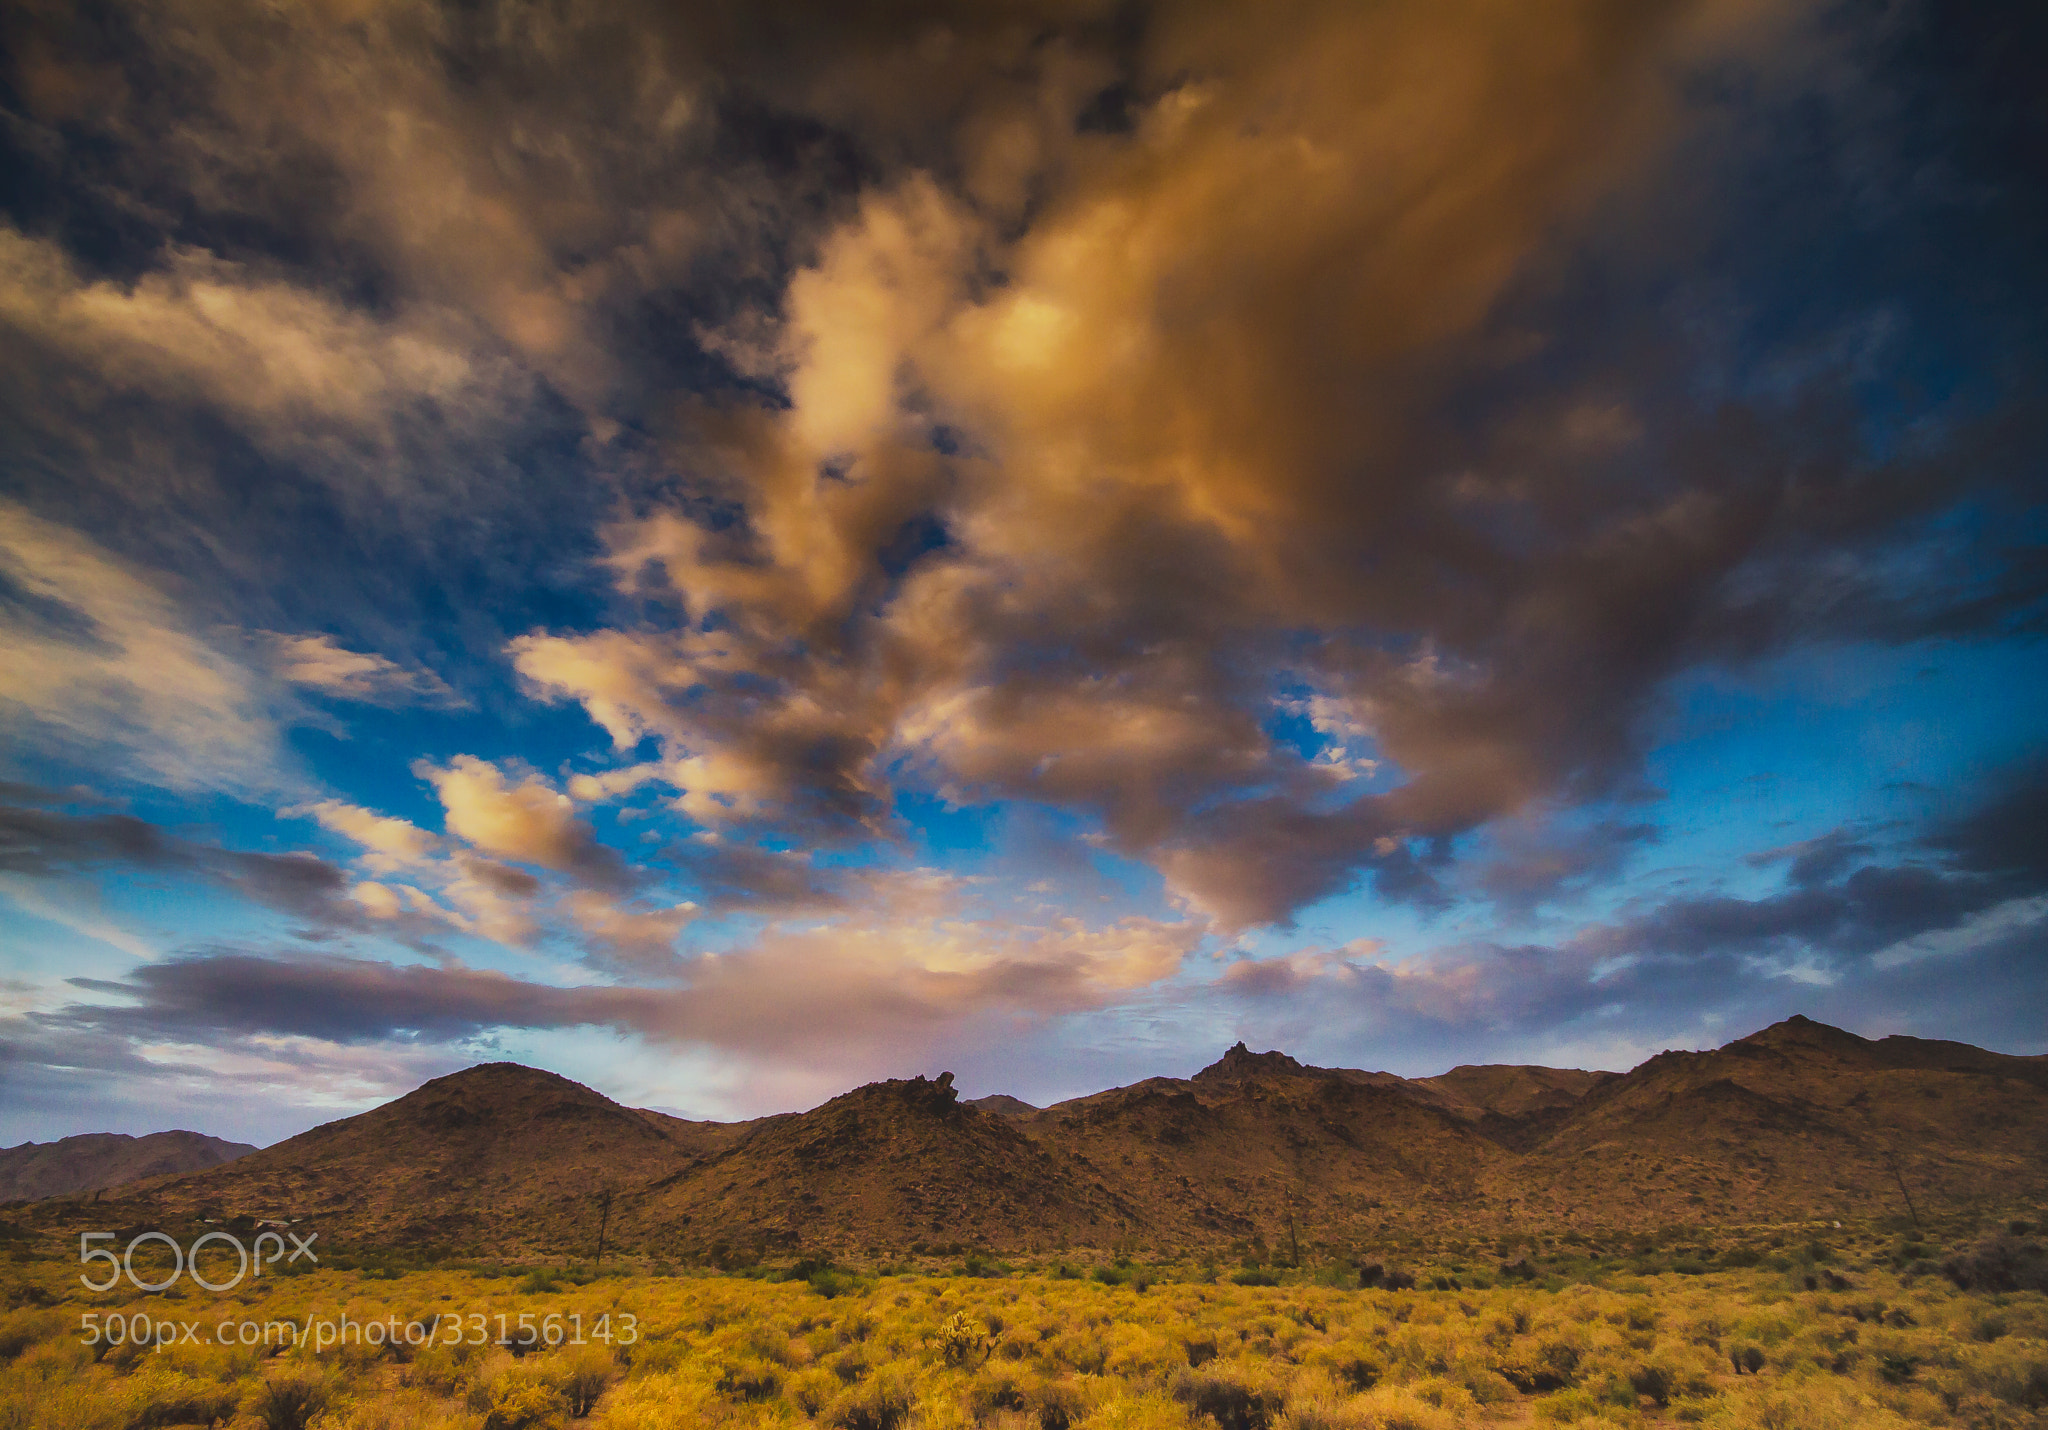 Photograph Mohave by Glenn Perryman on 500px